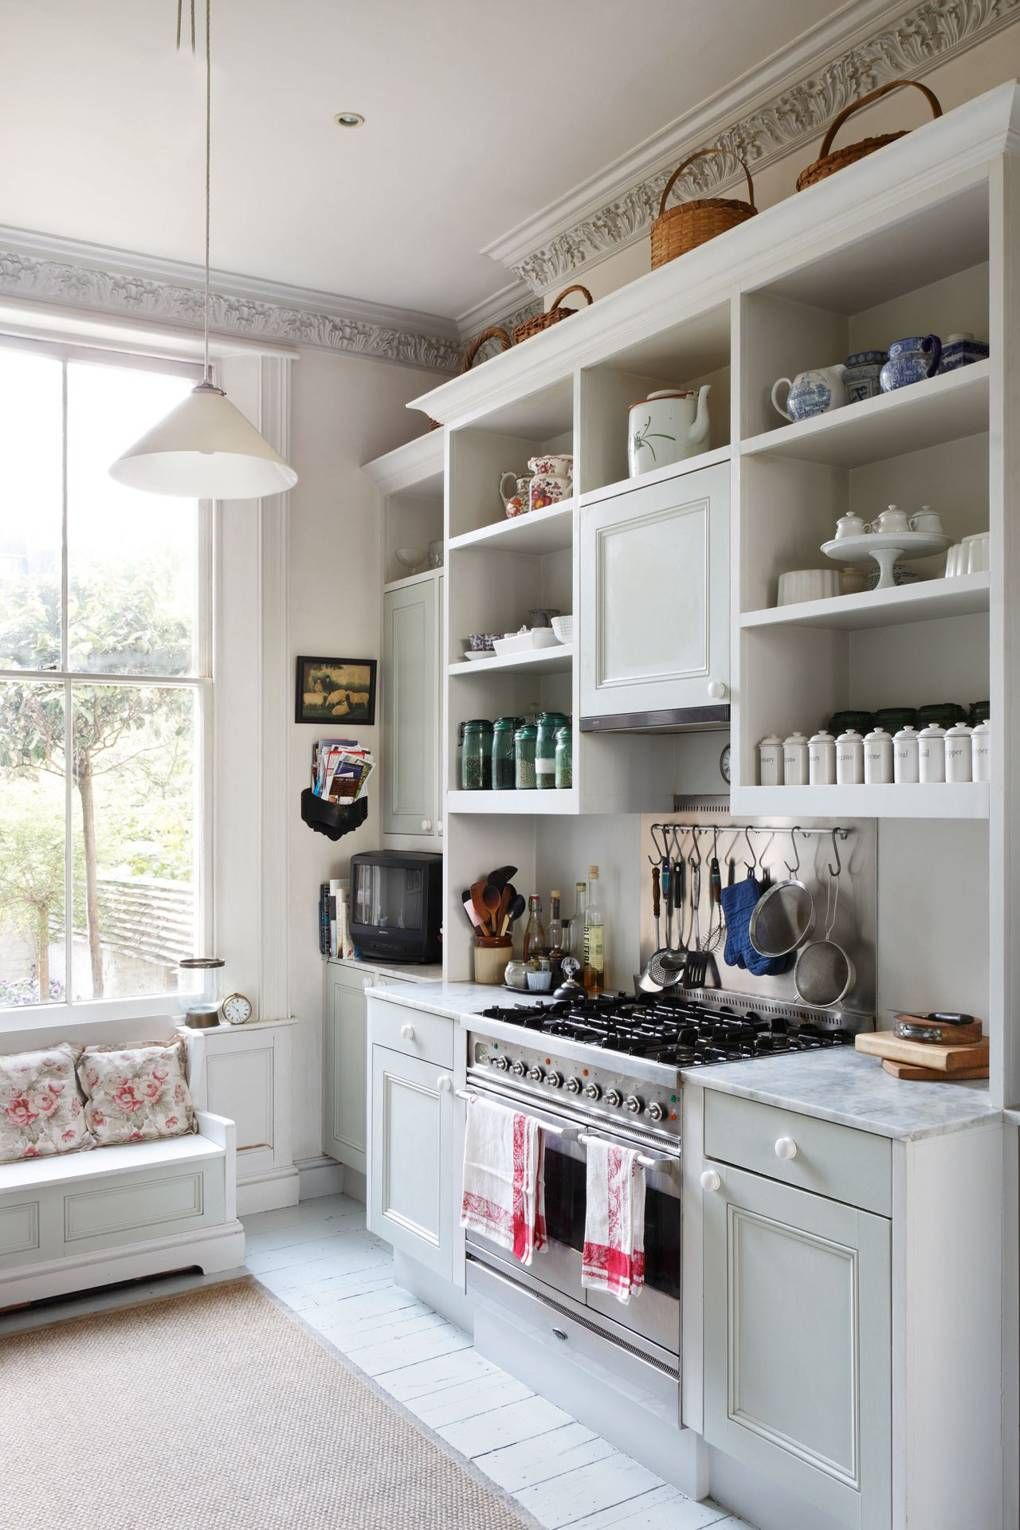 Country kitchen ideas and designs Ikea small kitchen